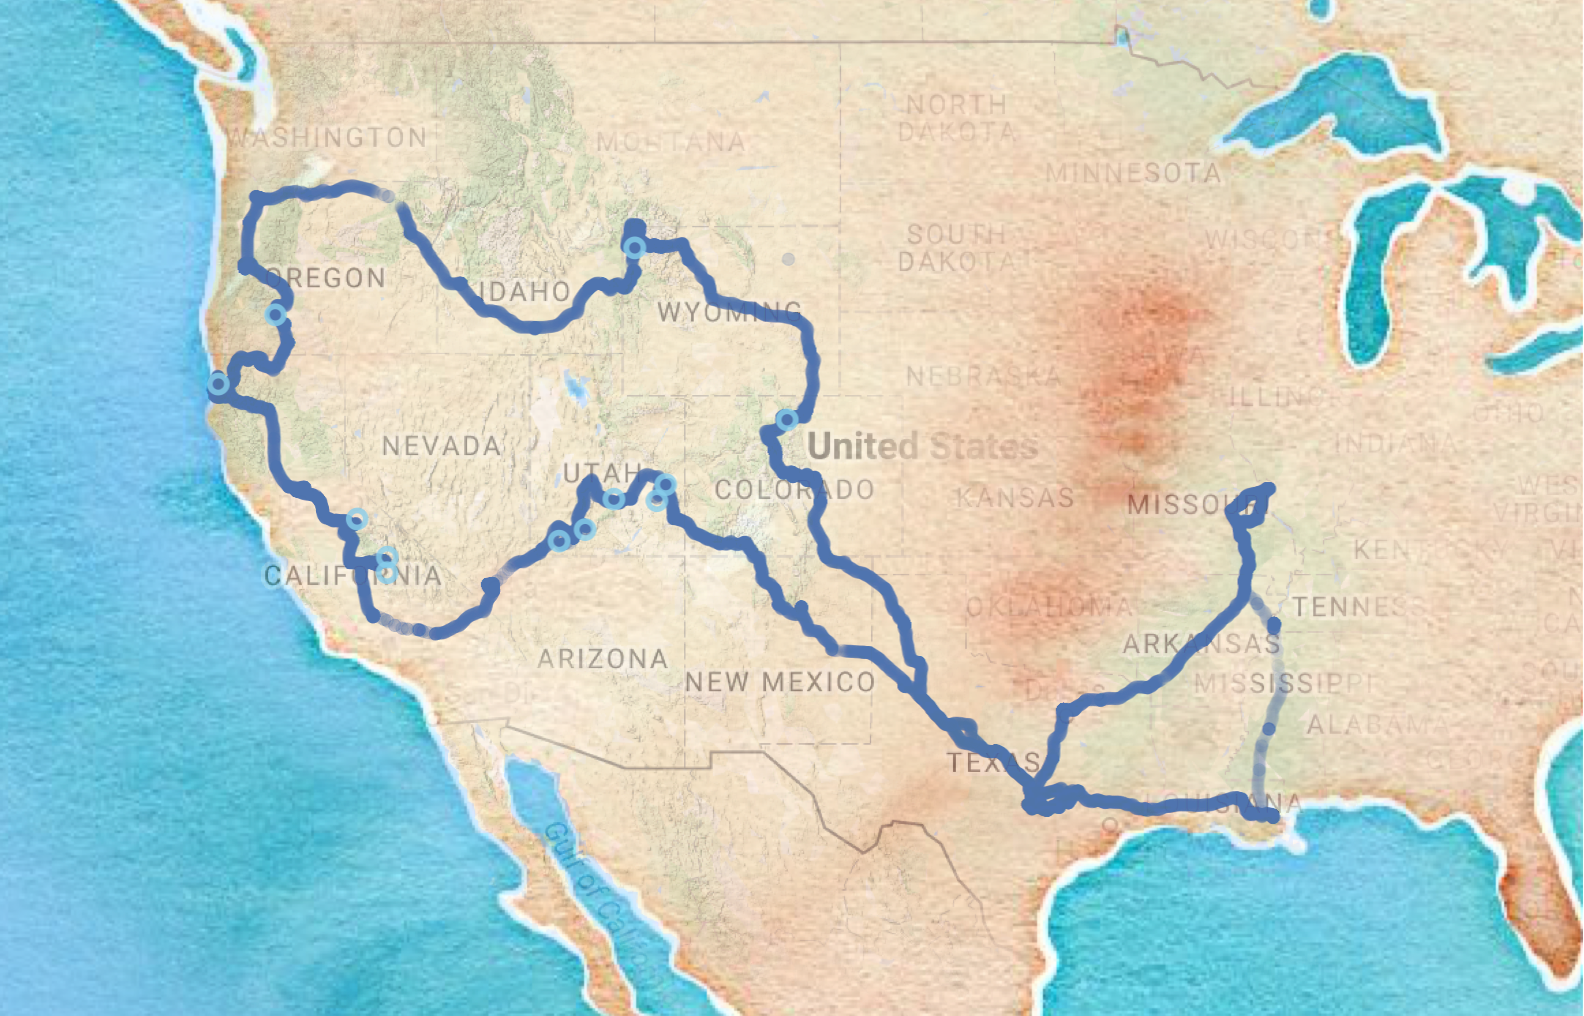 Cartography How To Create A US Map In R With Separation Between - Create us map